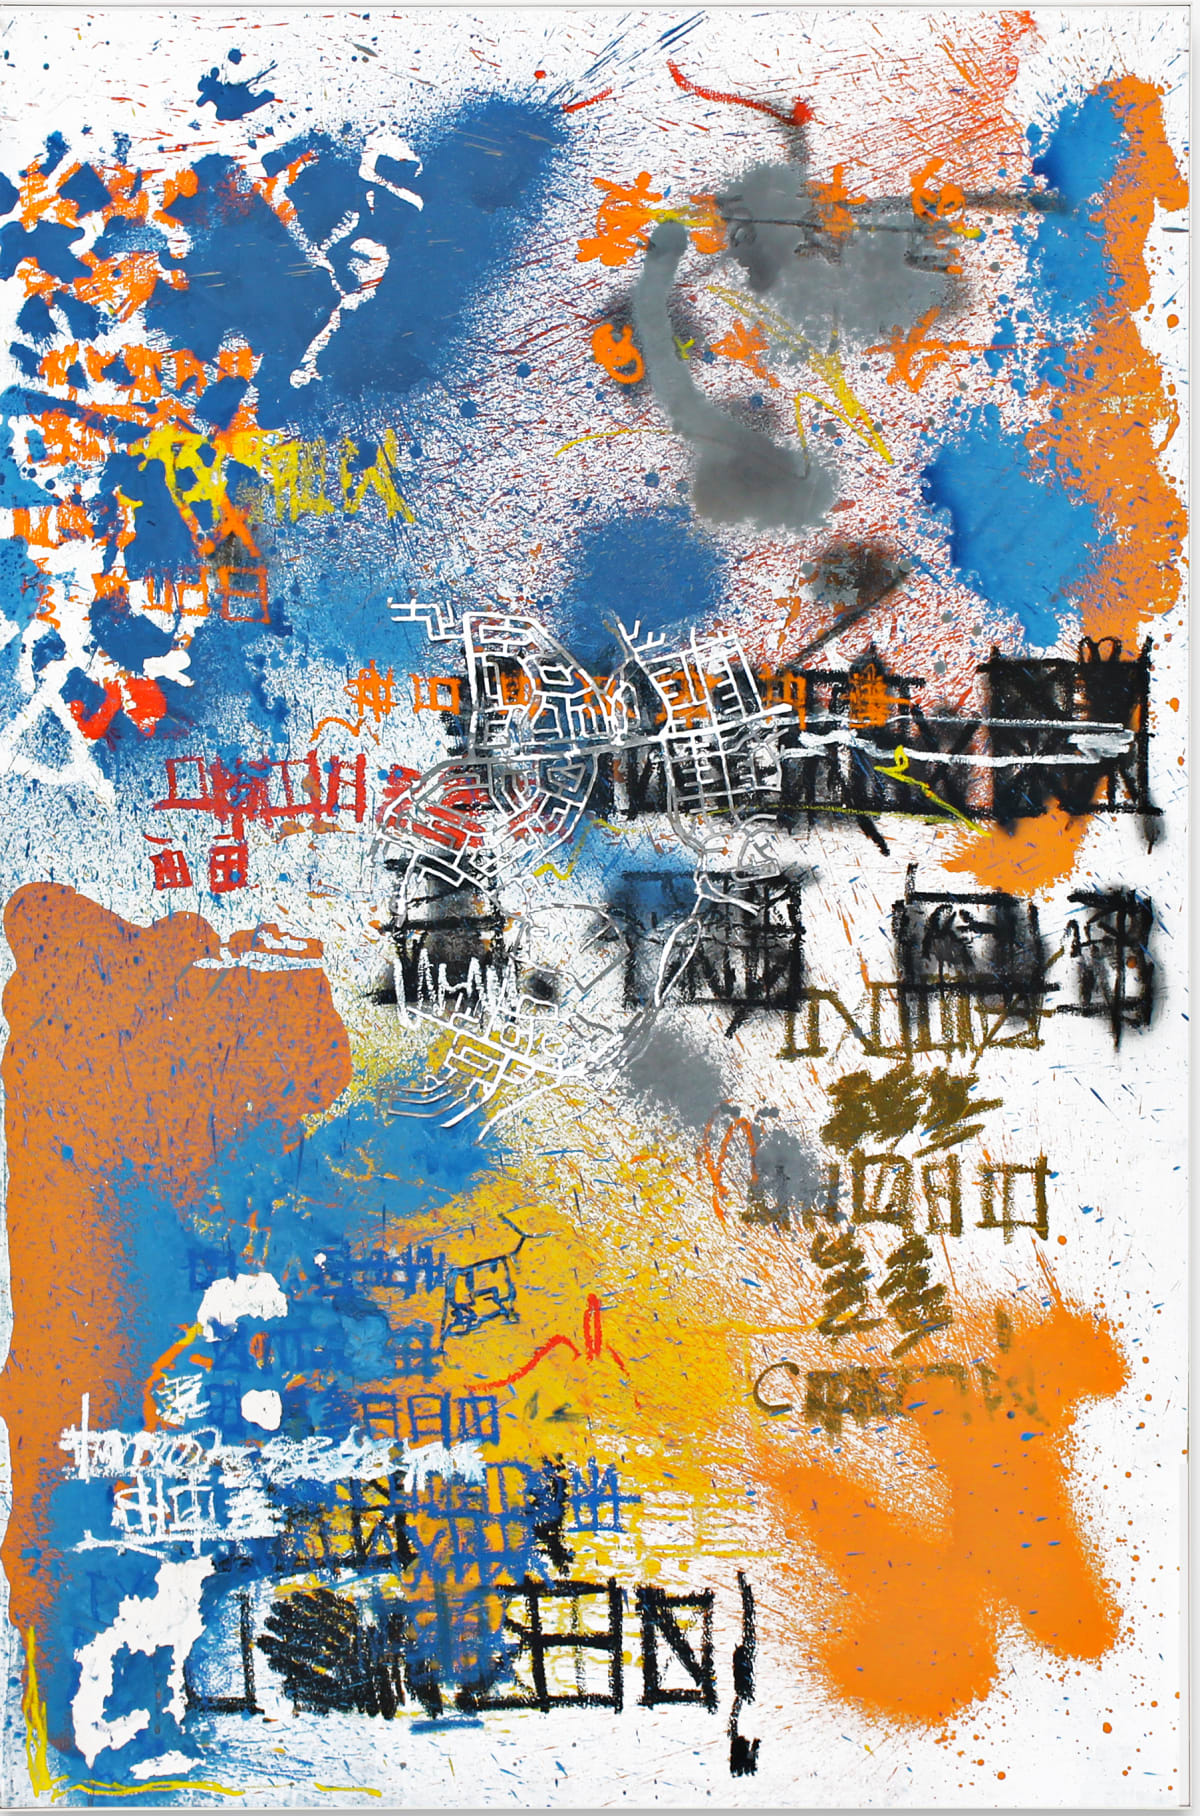 Danil Manzhos Number 8, 2018 Acrylic Paint compressed in fire extinguisher on Canvas 210 x 140 cm 82 1/2 x 55 1/2 in